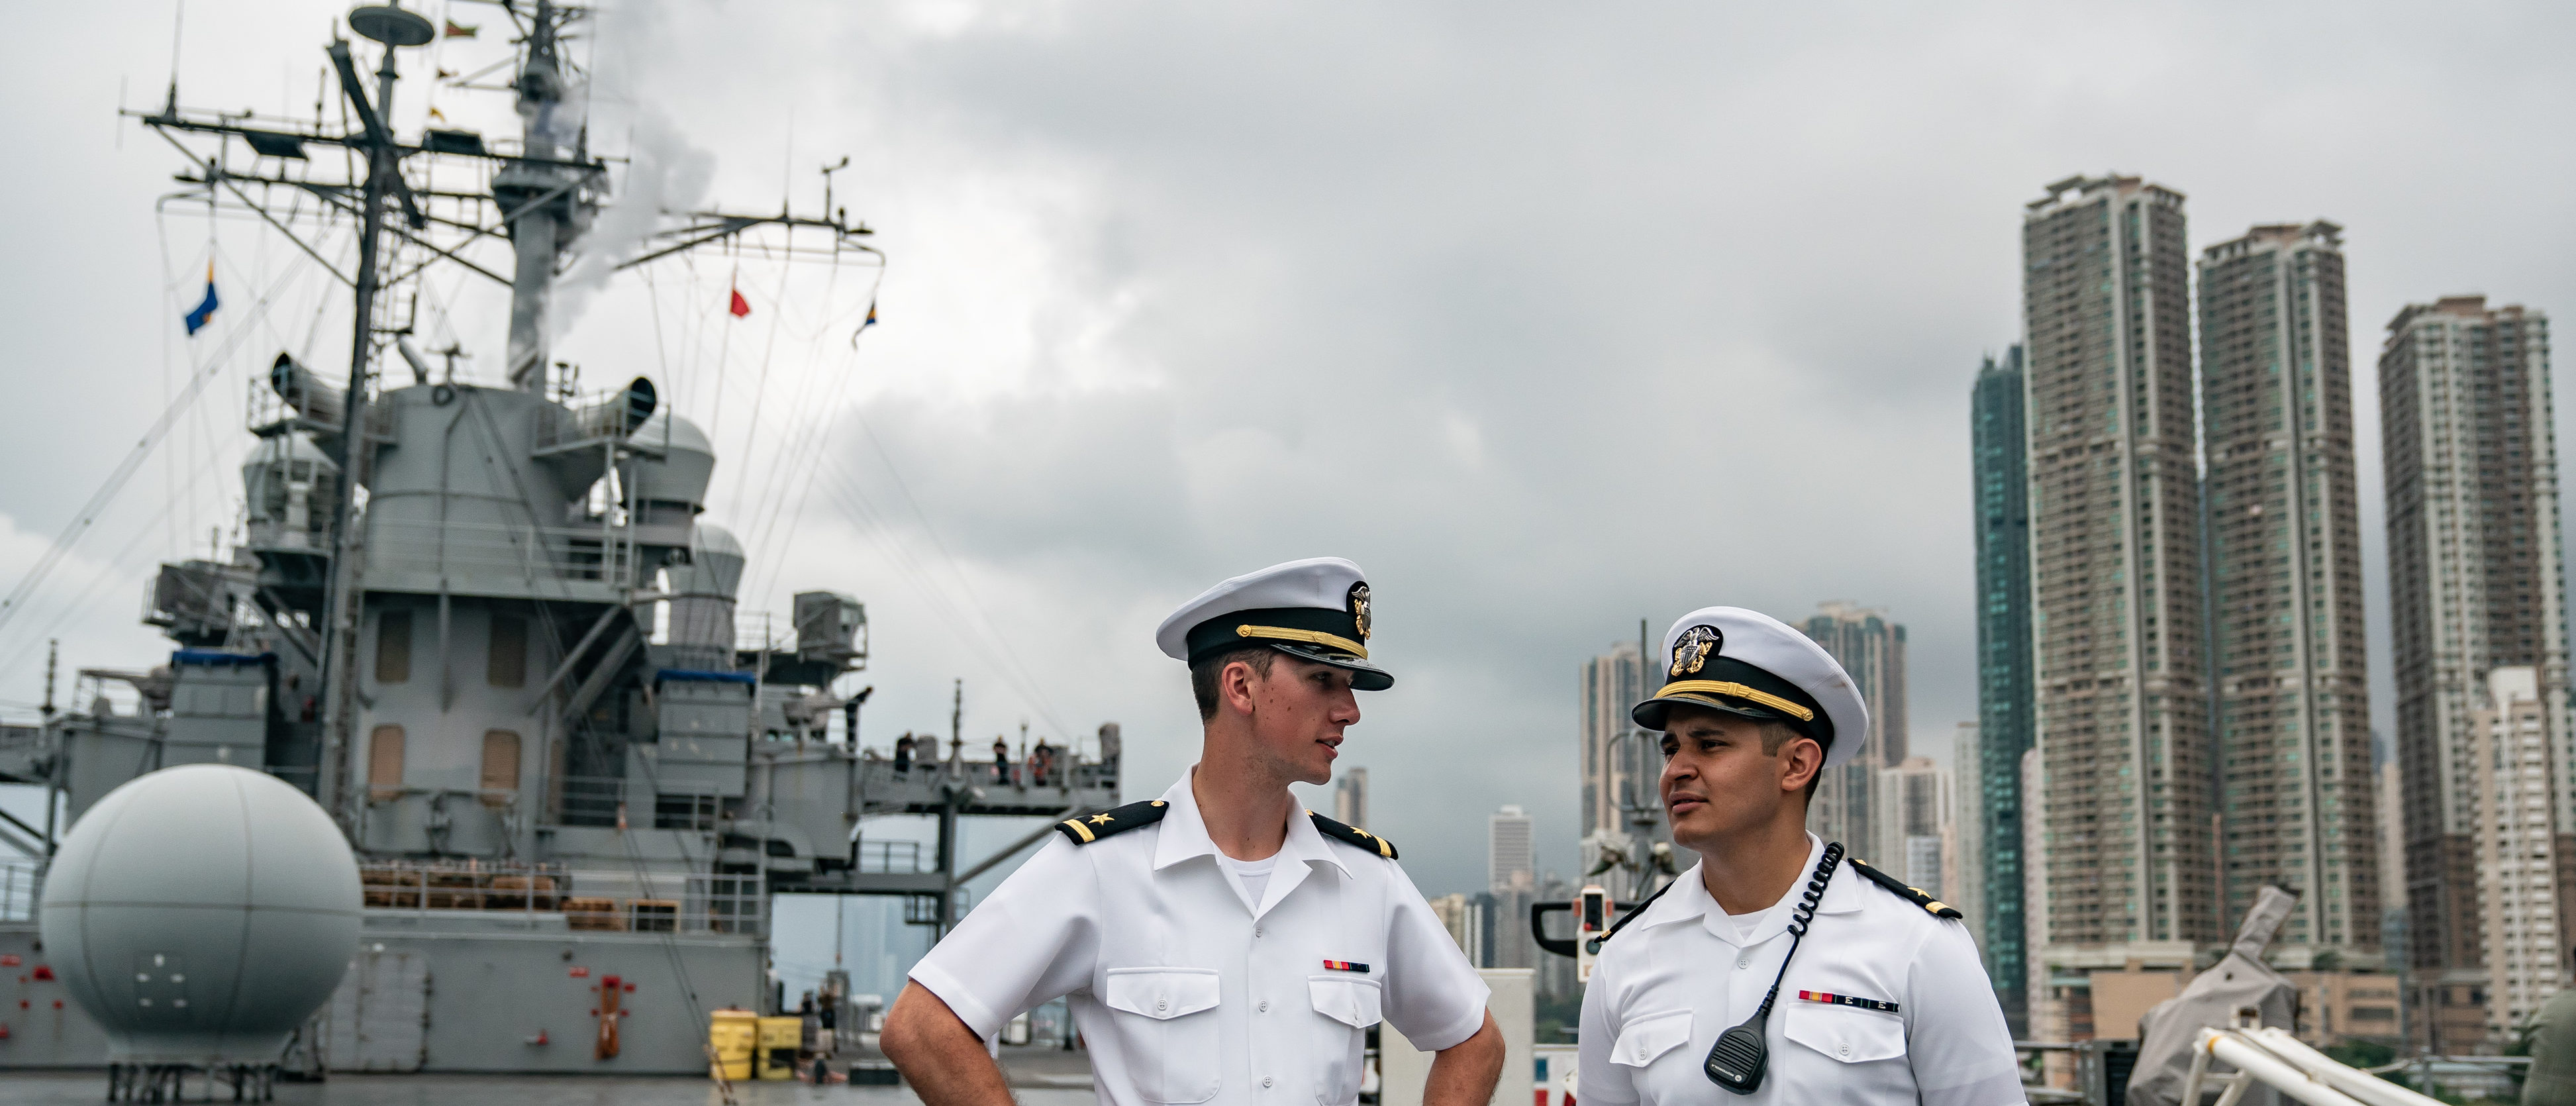 Navy crew members stand on deck of the USS Blue Ridge during a port call on April 20, 2019 in Hong Kong, China. (Anthony Kwan/Getty Images)